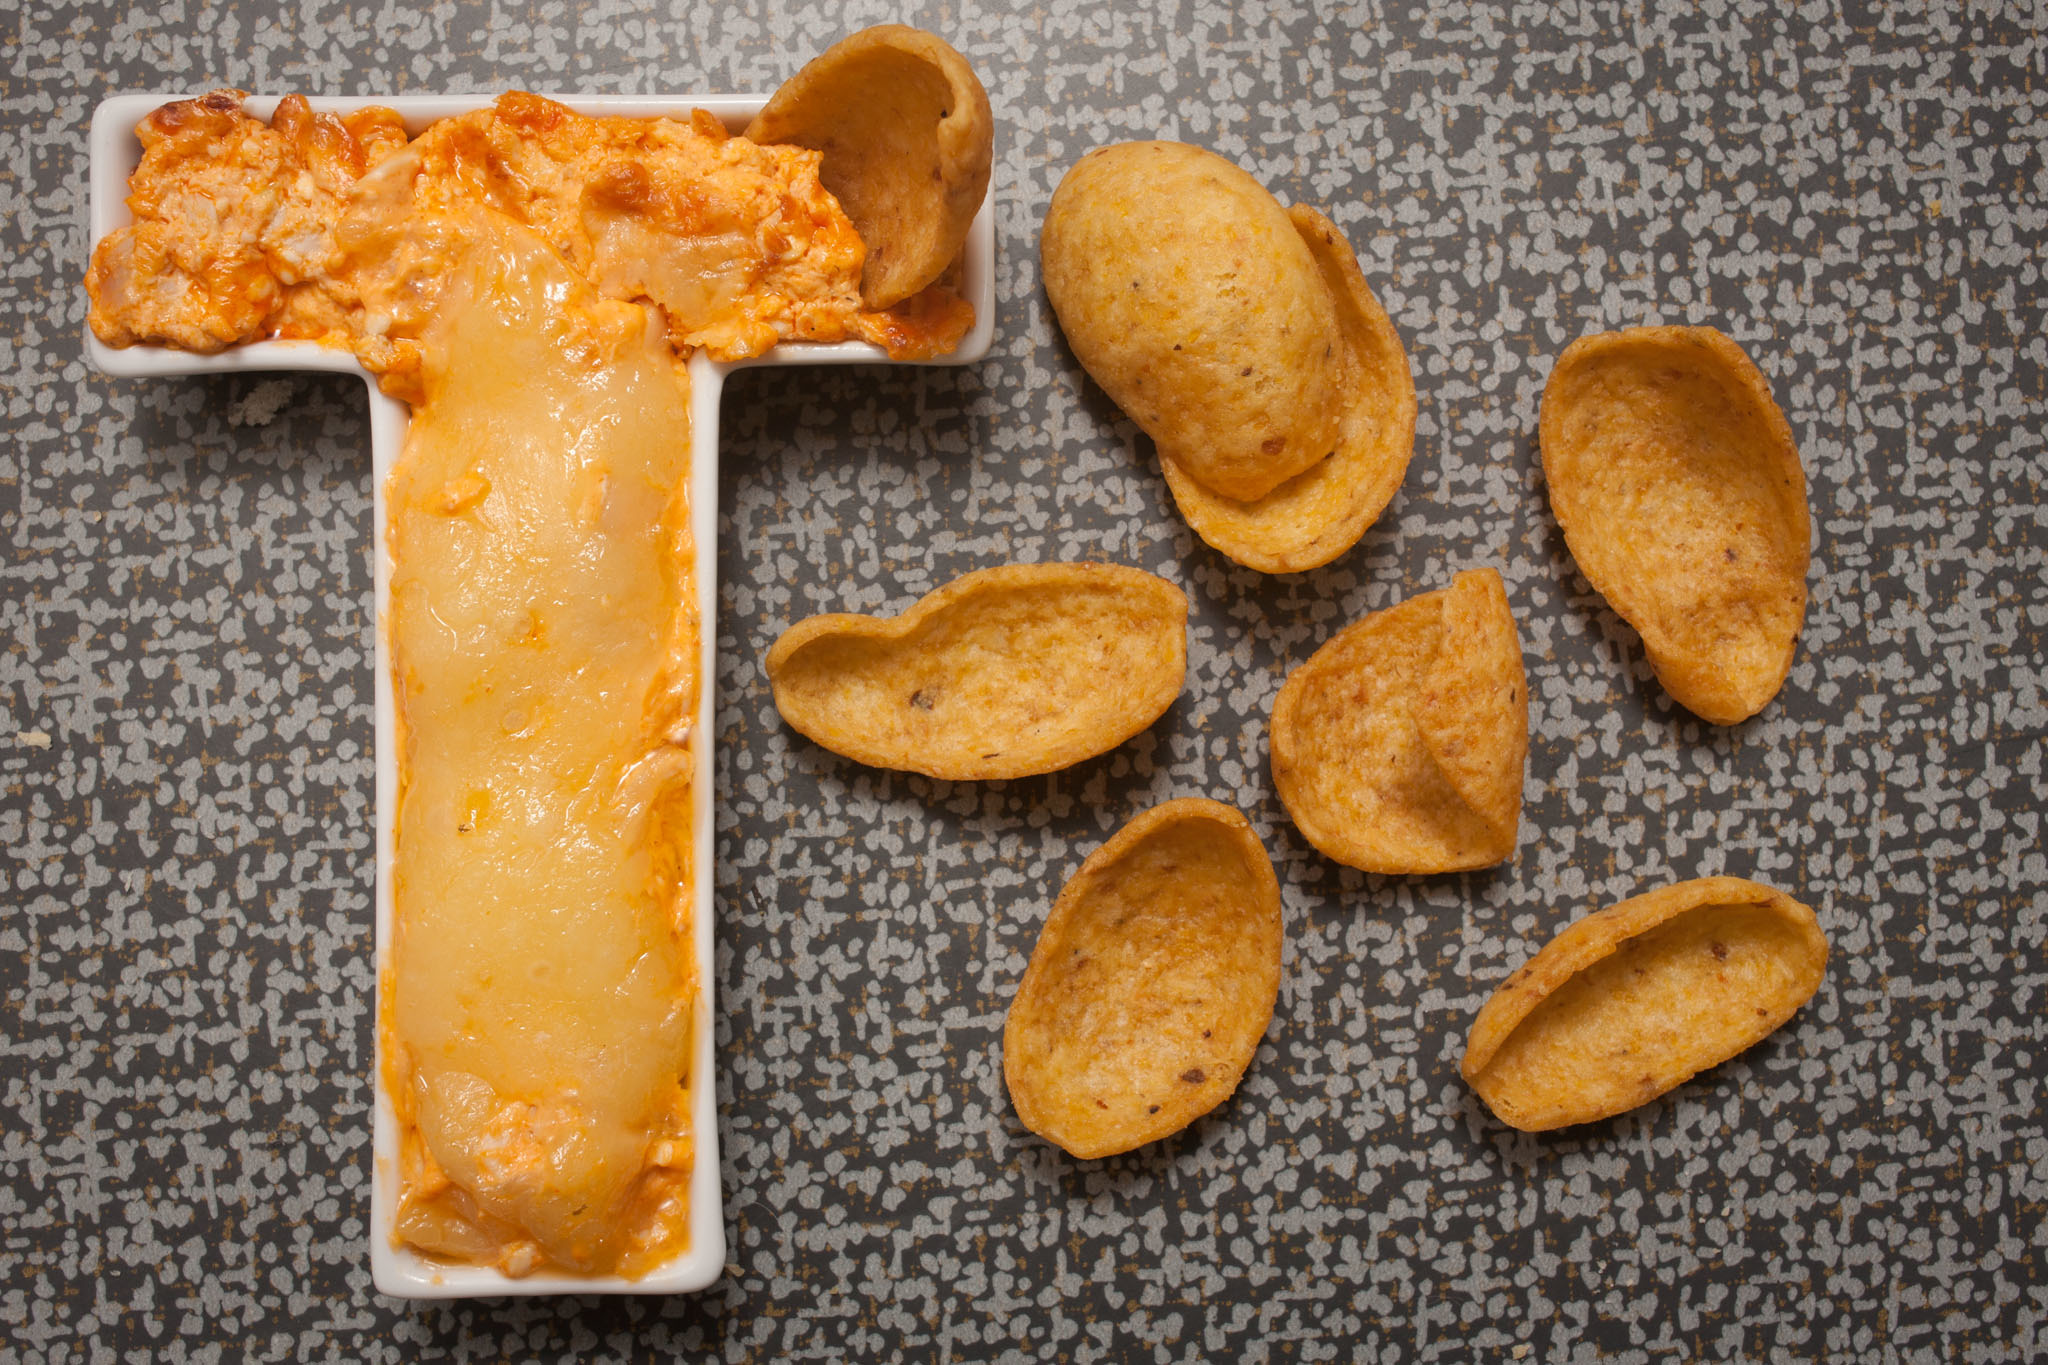 CH Distillery's executive chef JP Doiron gave us his recipe for hot wing dip to make during Super Bowl 2014.